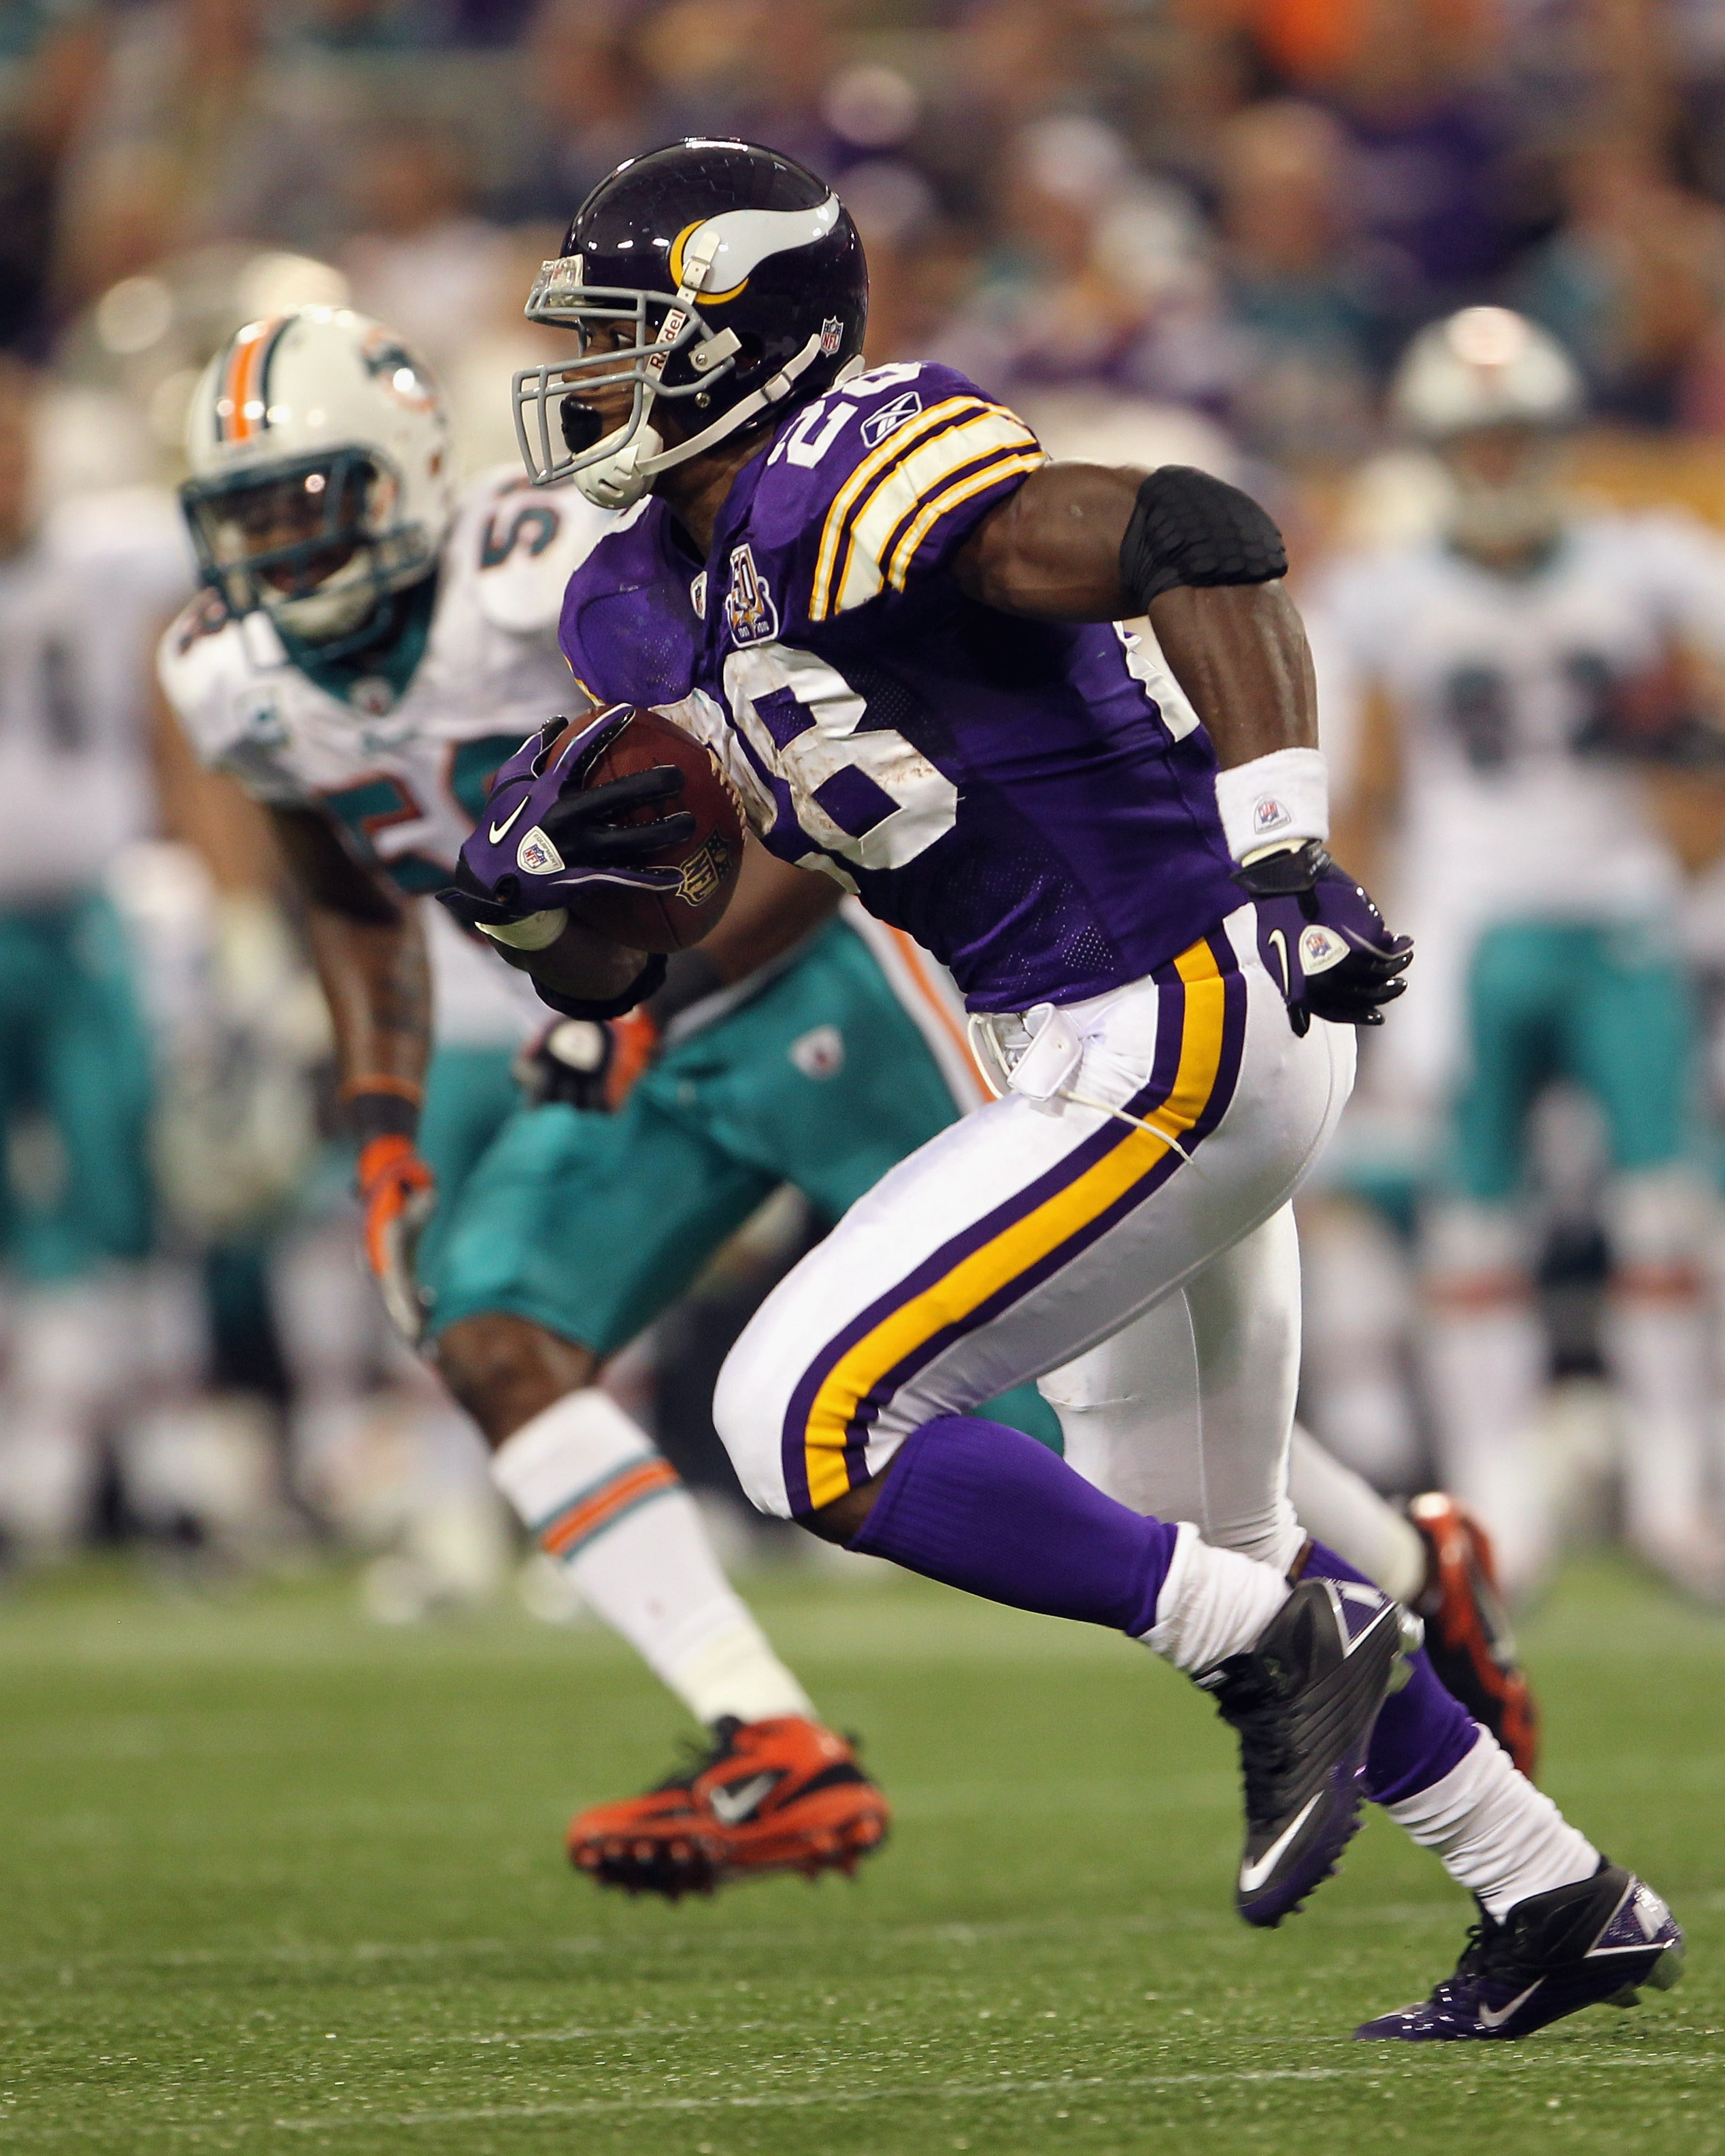 MINNEAPOLIS - SEPTEMBER 19:  Adrian Peterson #28 of the Minnesota Vikings carries the ball during the game against the Miami Dolphins on September 19, 2010 at Hubert H. Humphrey Metrodome in Minneapolis, Minnesota.  (Photo by Jamie Squire/Getty Images)